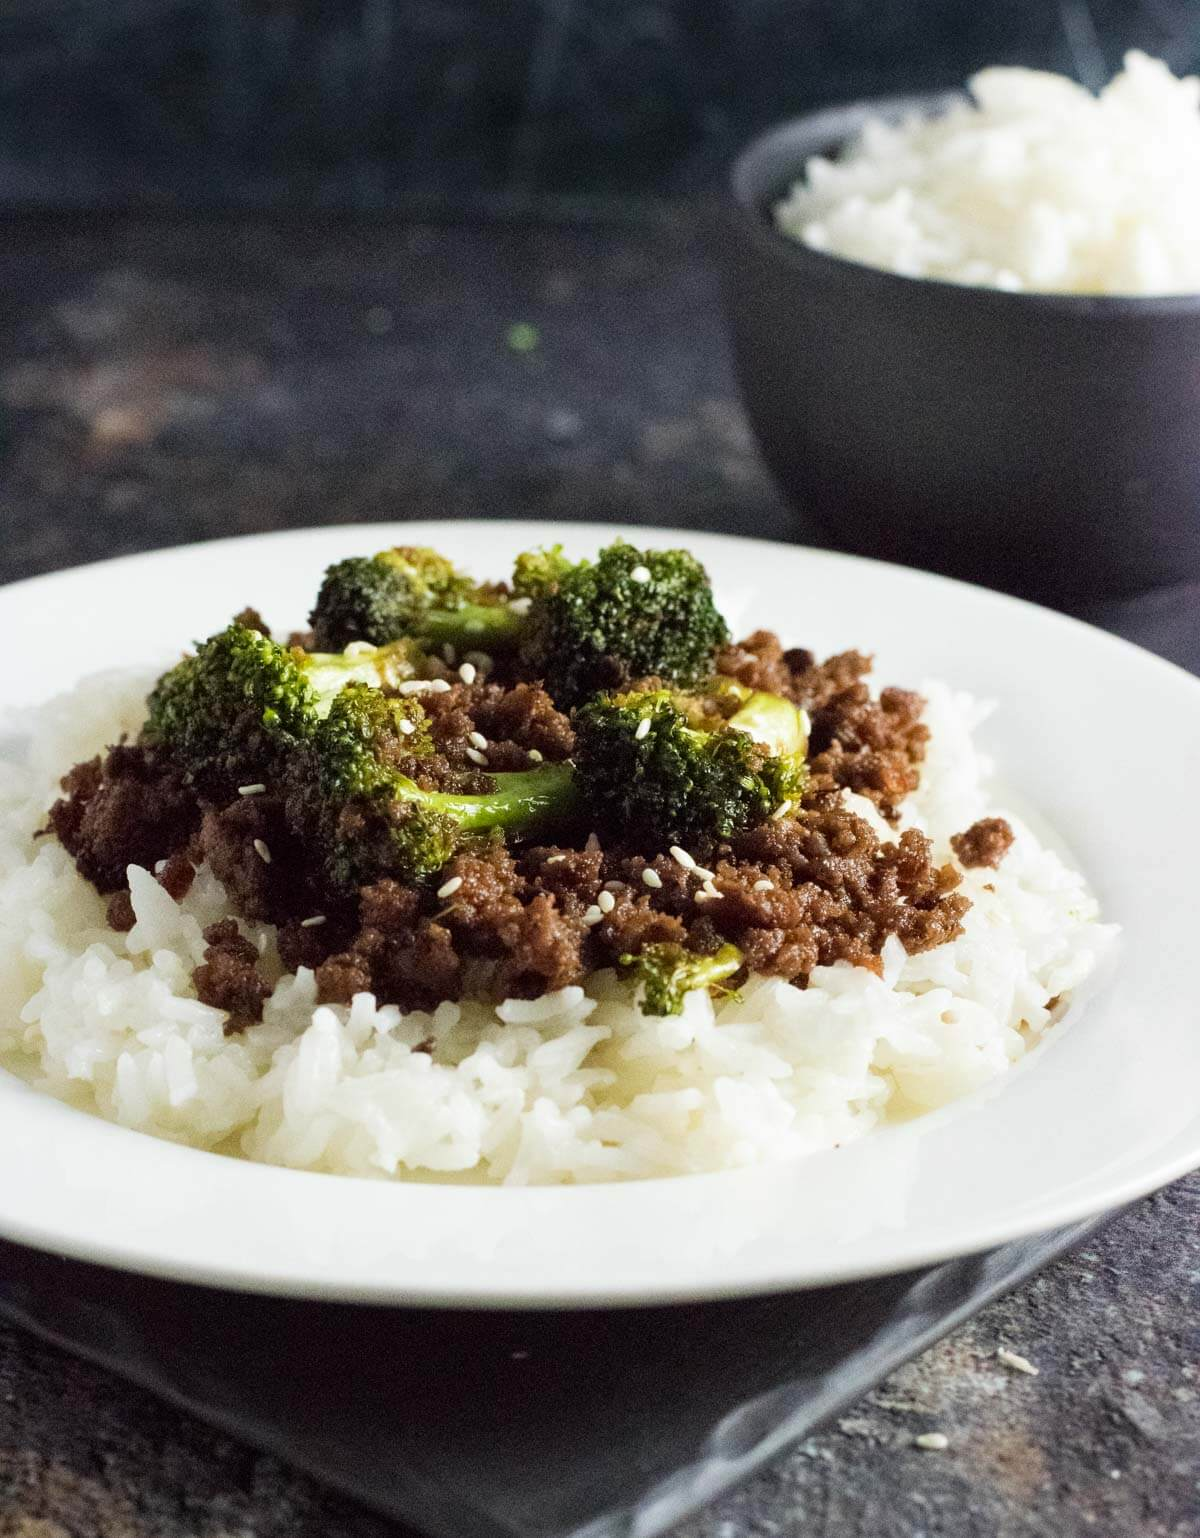 Ground beef and broccoli on a white plate.